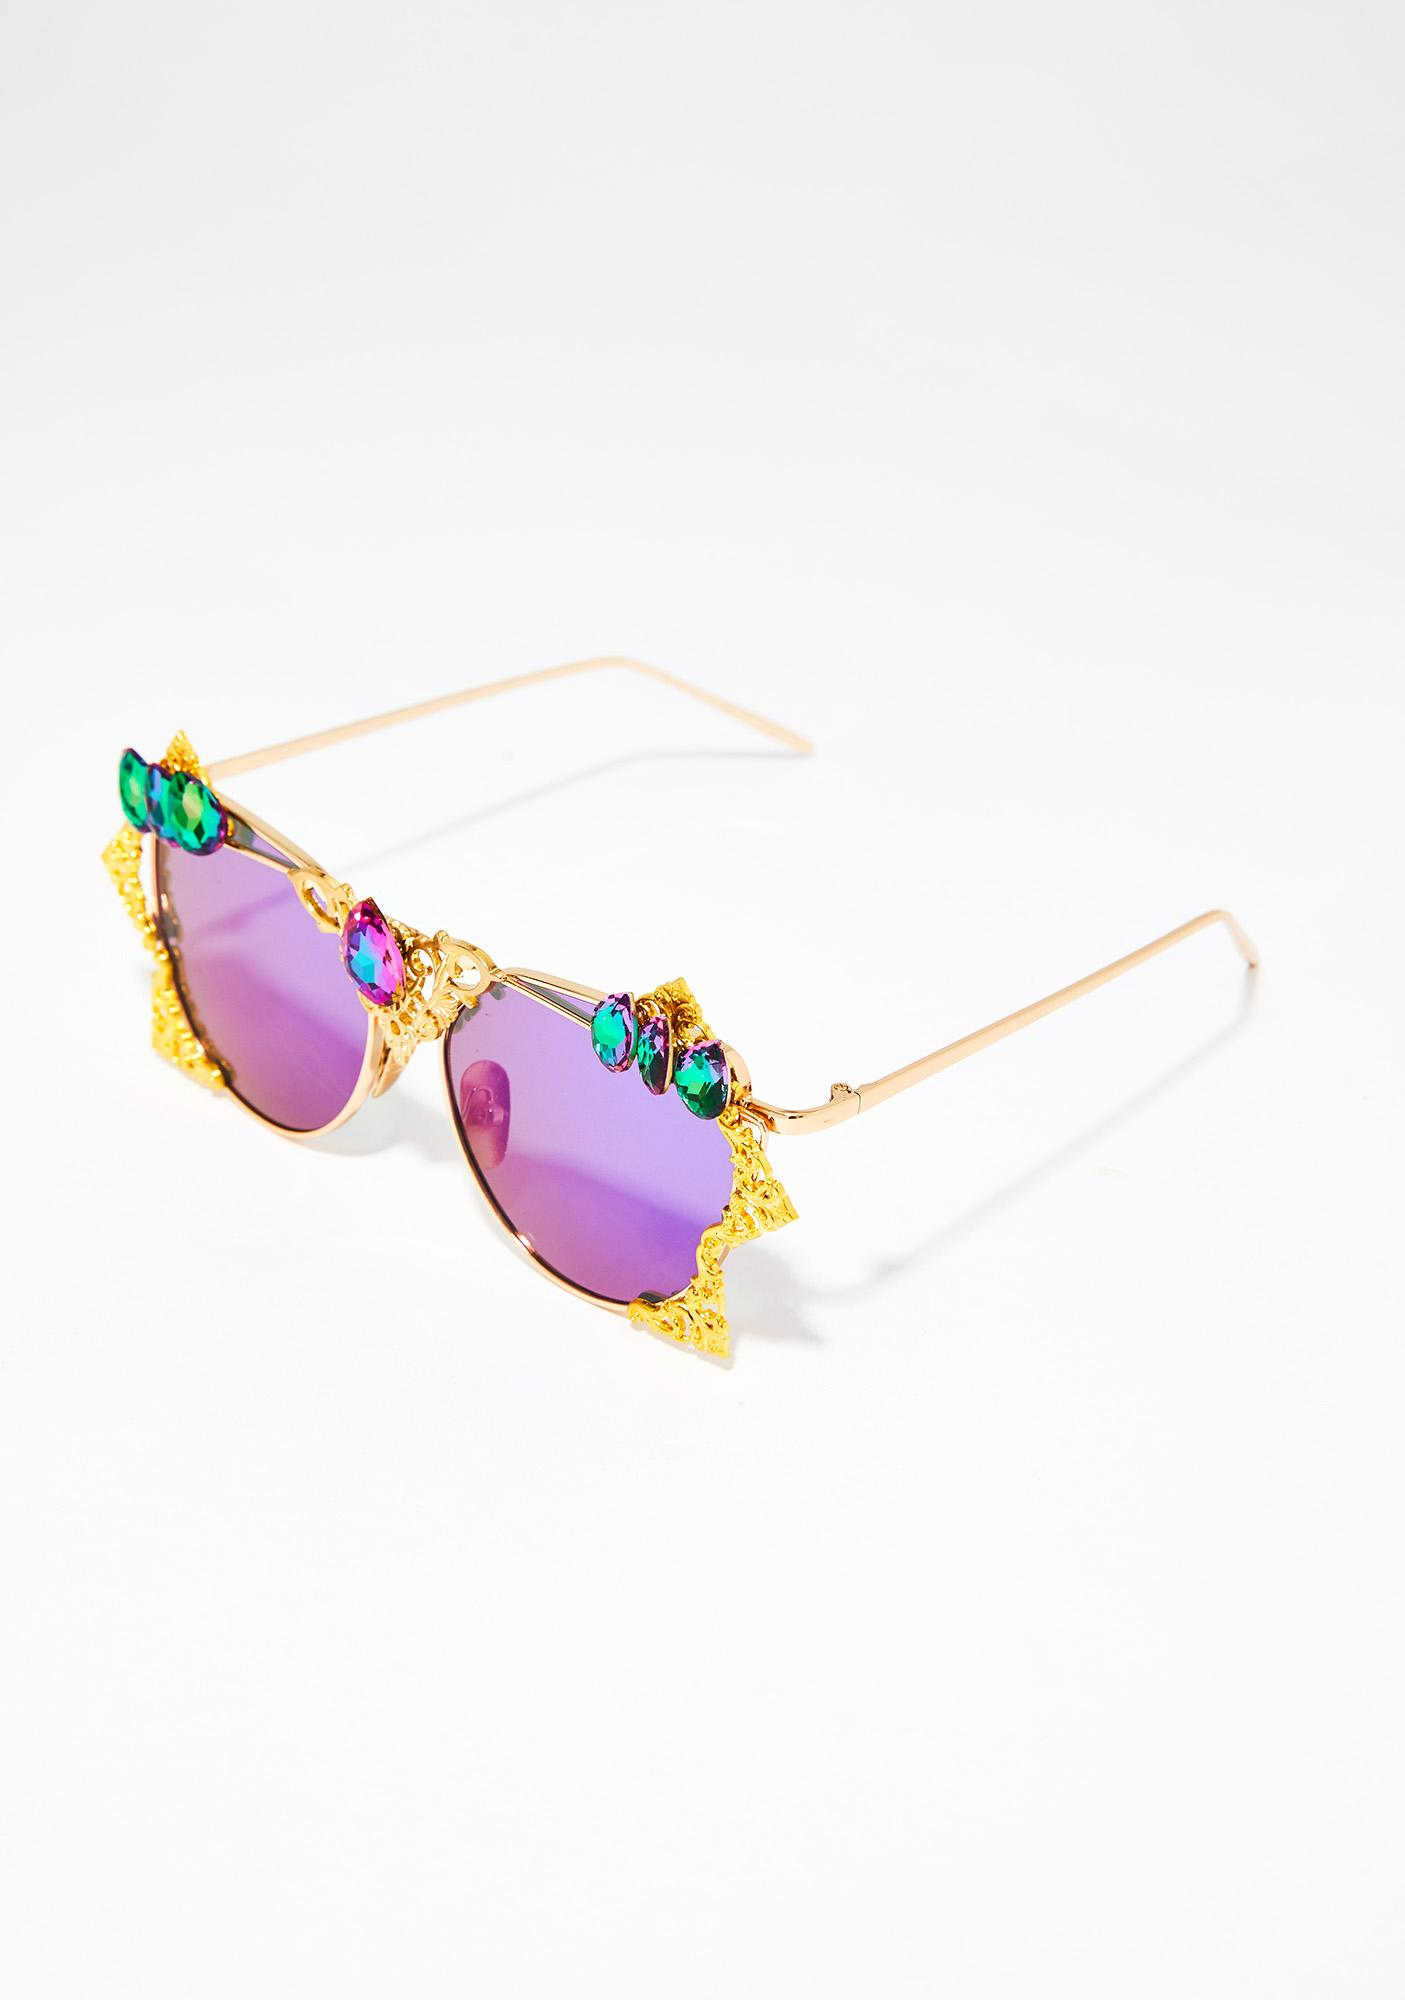 The Lyte Couture Sea Goddess Sunnies